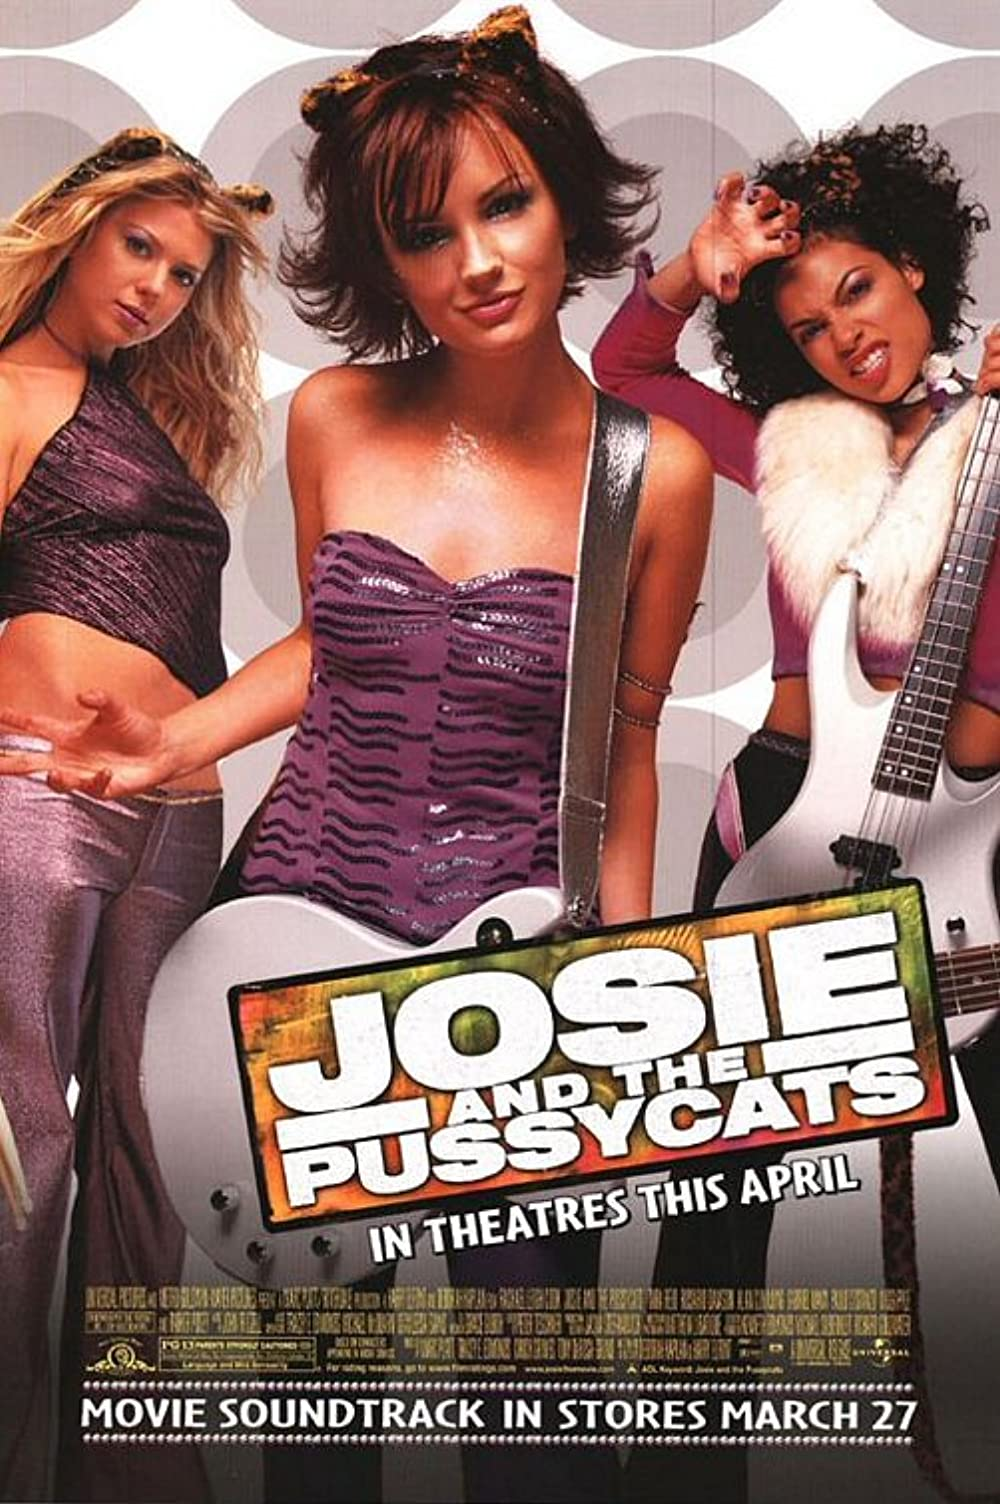 Josie-movie-poster-2